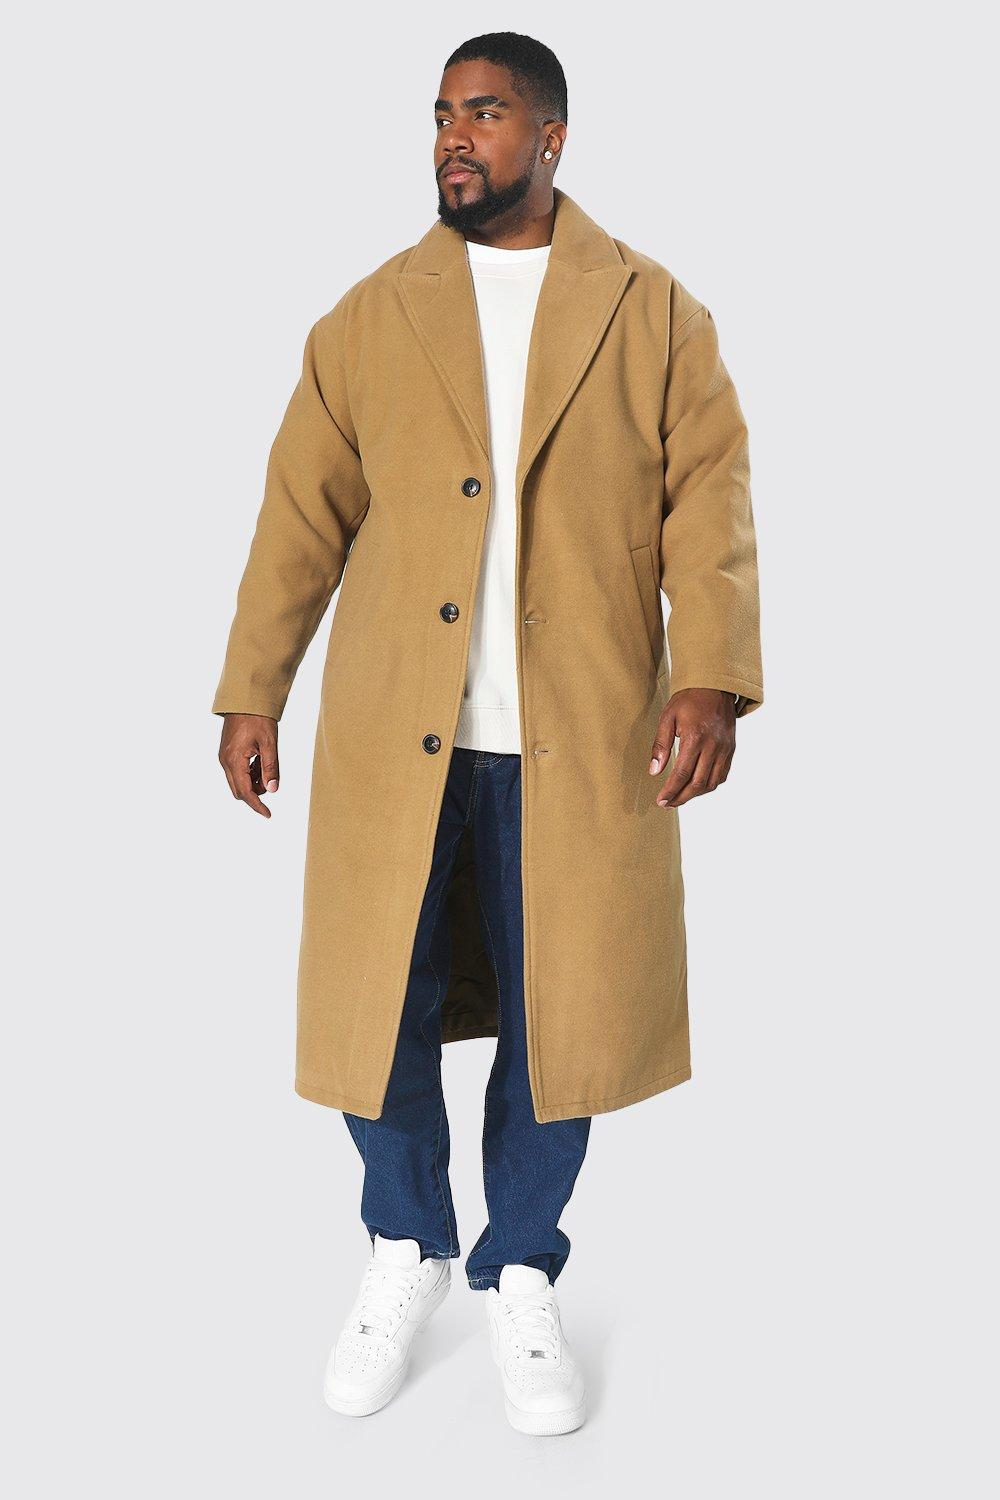 Men's Vintage Jackets & Coats Mens Plus Size Single Breasted Longline Overcoat - Beige $48.00 AT vintagedancer.com